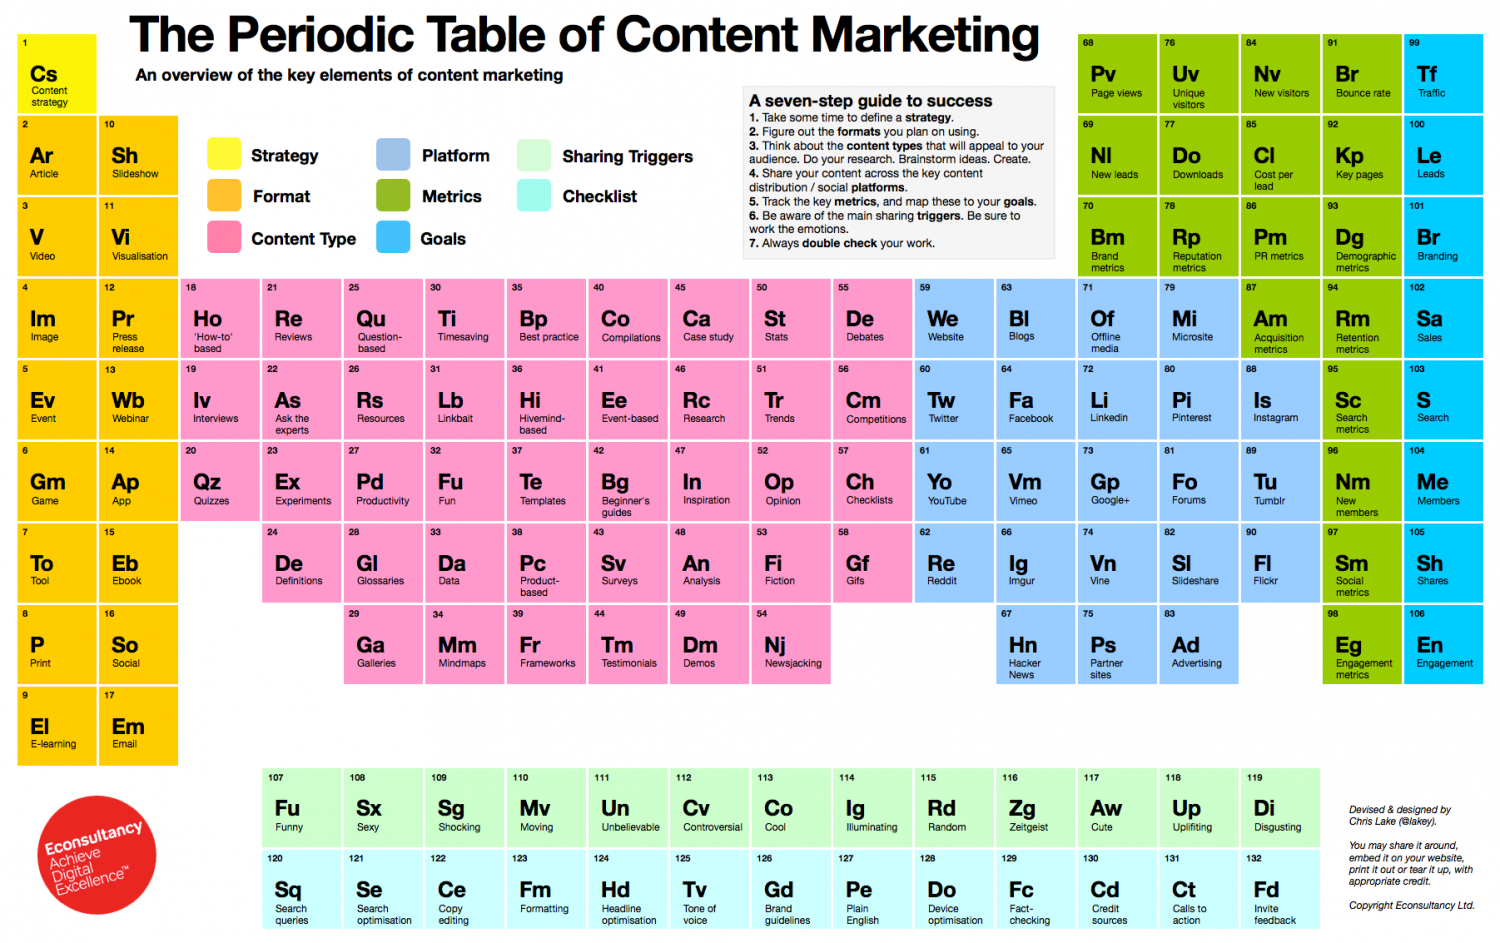 The Periodic Table of Content Marketing Infographic